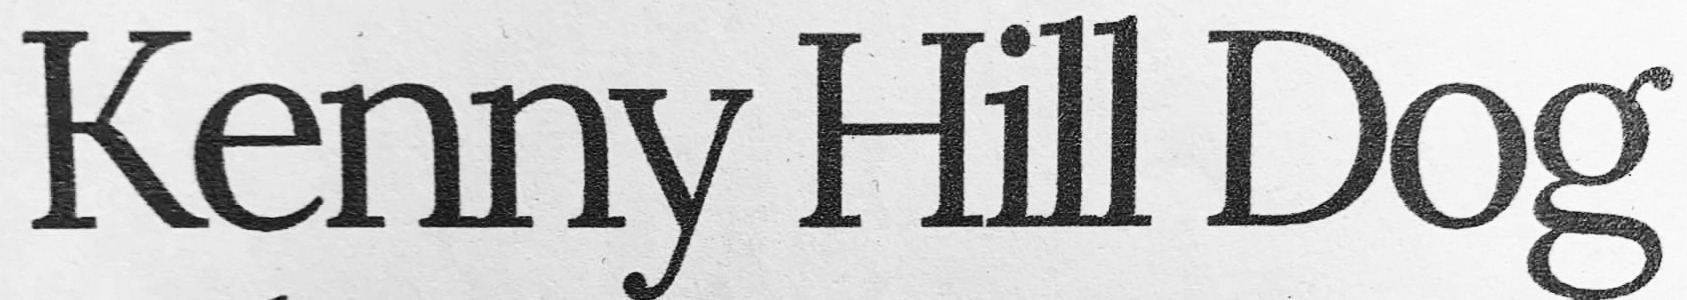 what font is this please?